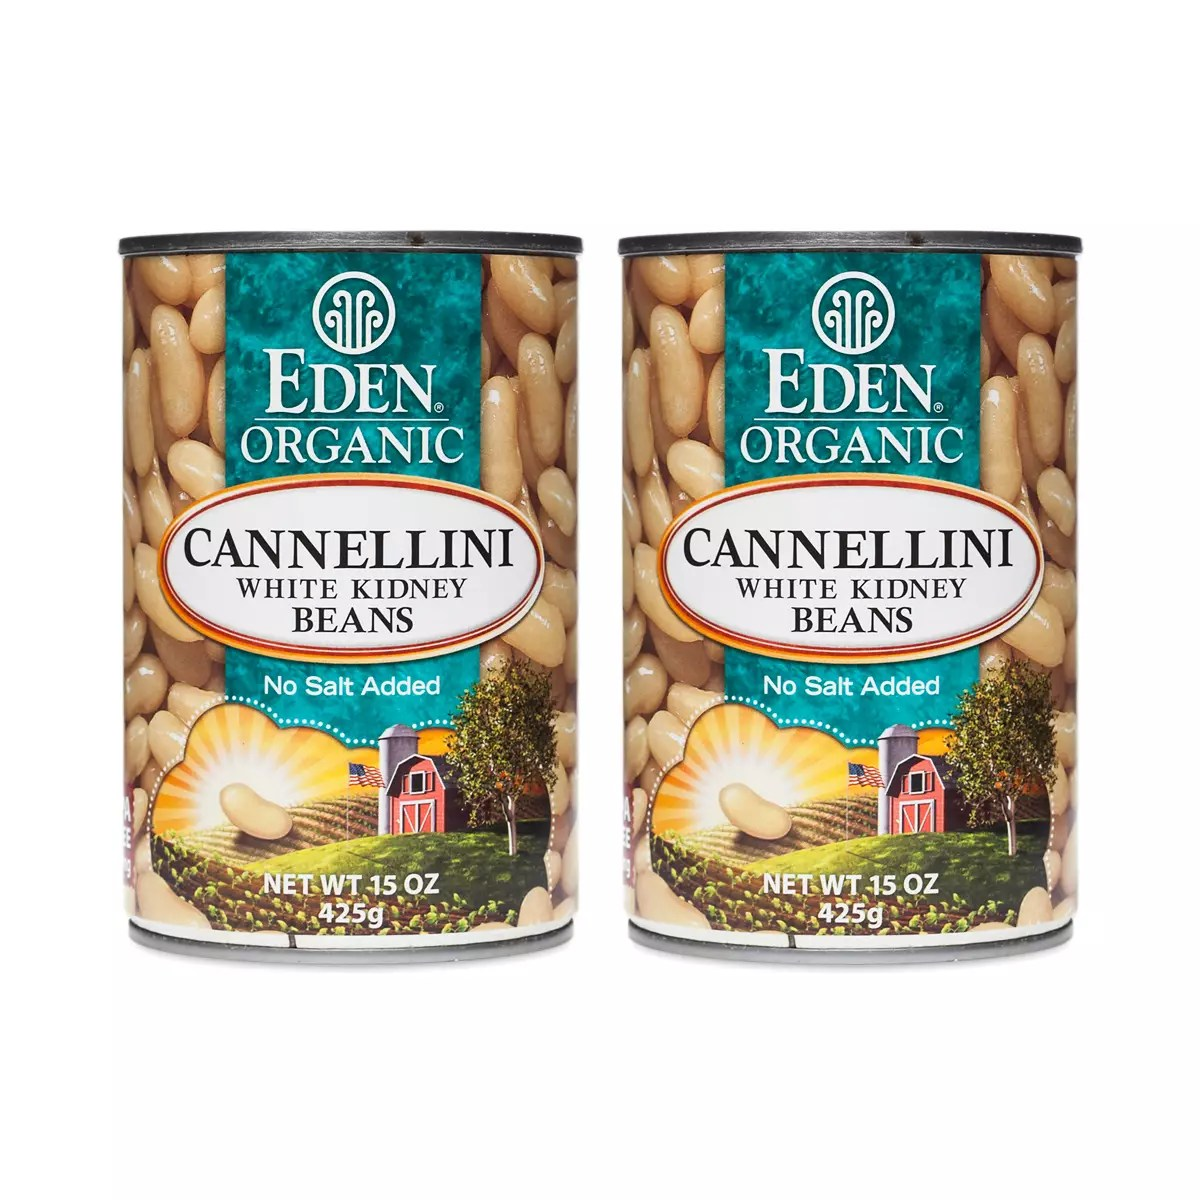 Organic Cannellini (White Kidney) Beans (2-pack)